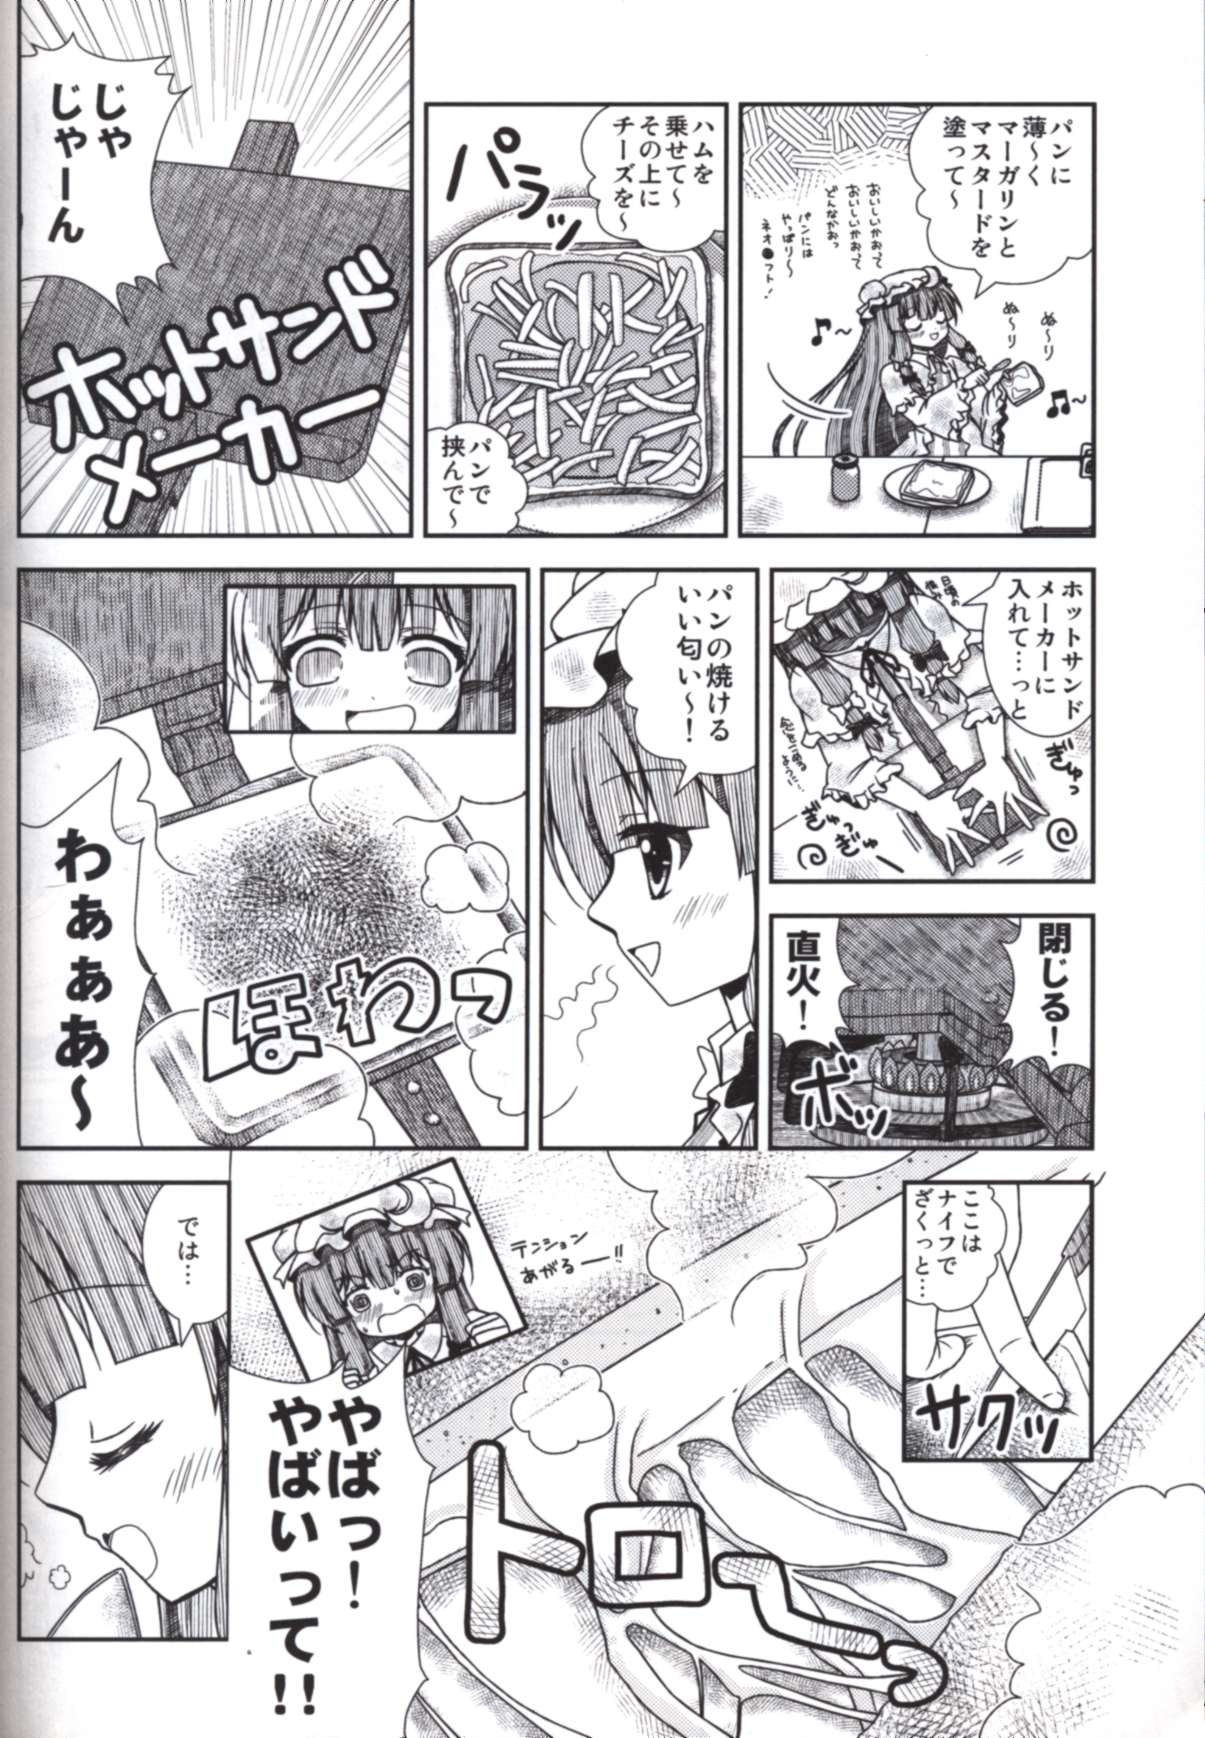 Doujinshi - Touhou Project / Patchouli Knowledge (パチュリーのズボラ飯12) / 168